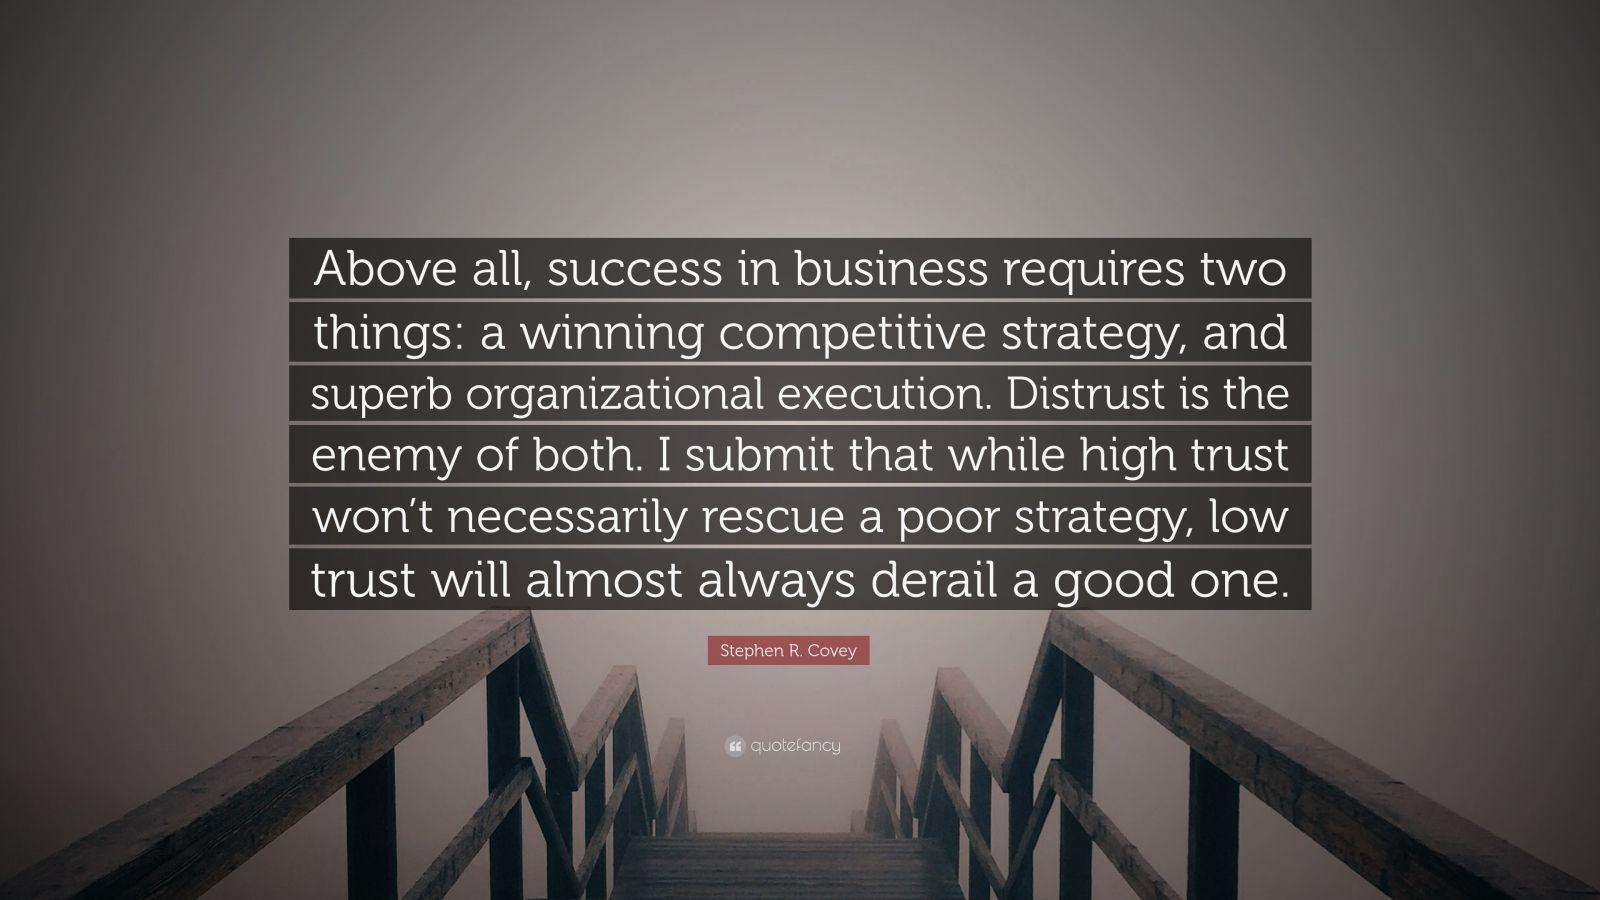 """Stephen R. Covey Quote: """"Above all, success in business requires two things: a winning competitive strategy, and superb organizational execution. Distrust is the enemy of both. I submit that while high trust won't necessarily rescue a poor strategy, low trust will almost always derail a good one."""""""